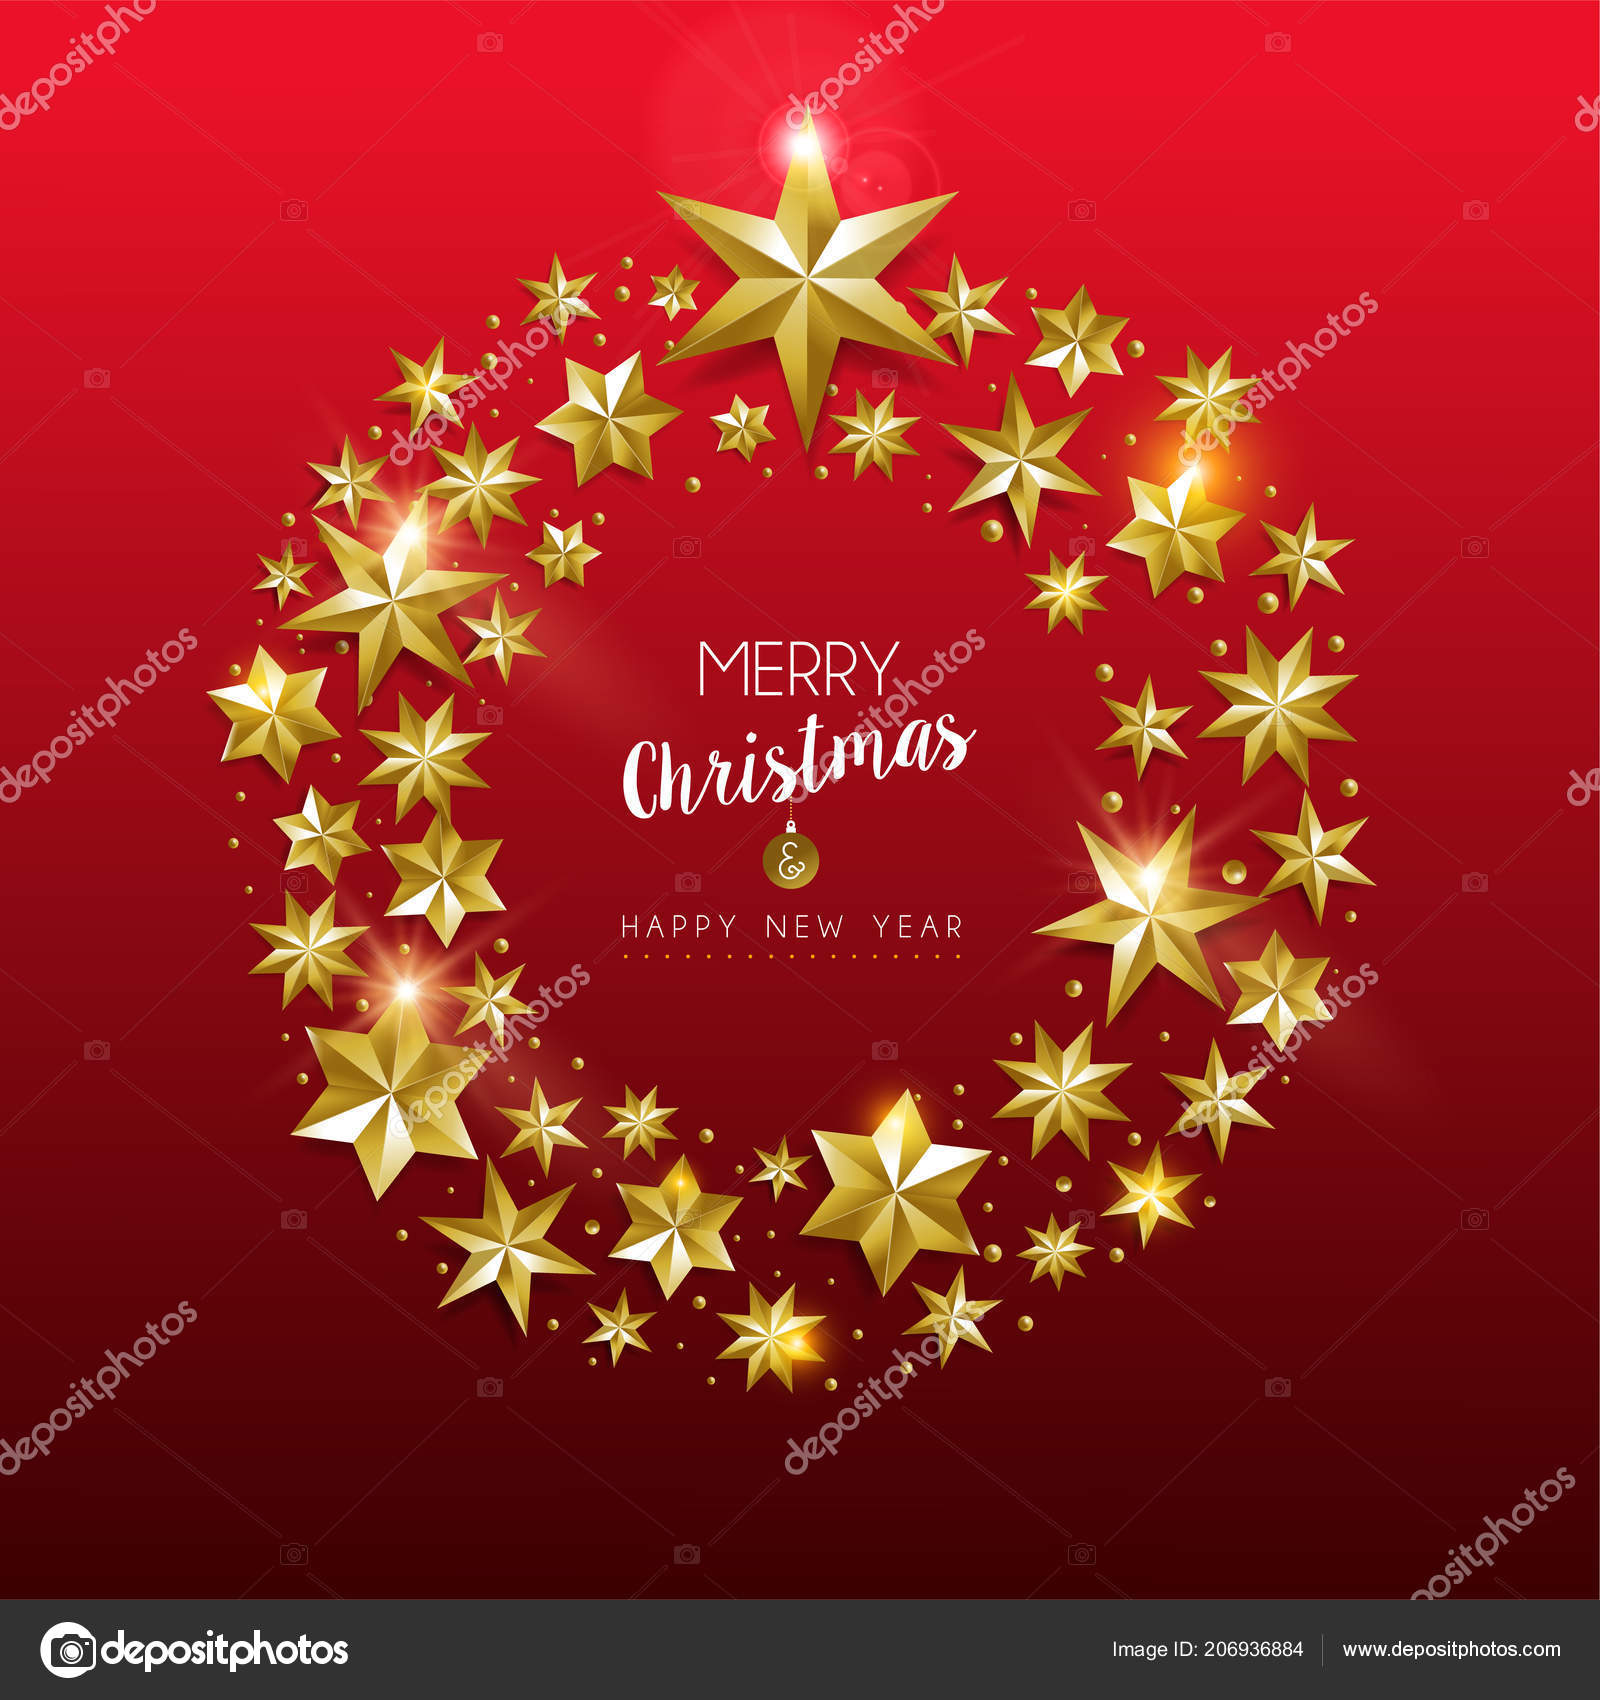 merry christmas new year greeting card with realistic gold stars and glitter making elegant holiday wreath on festive red background